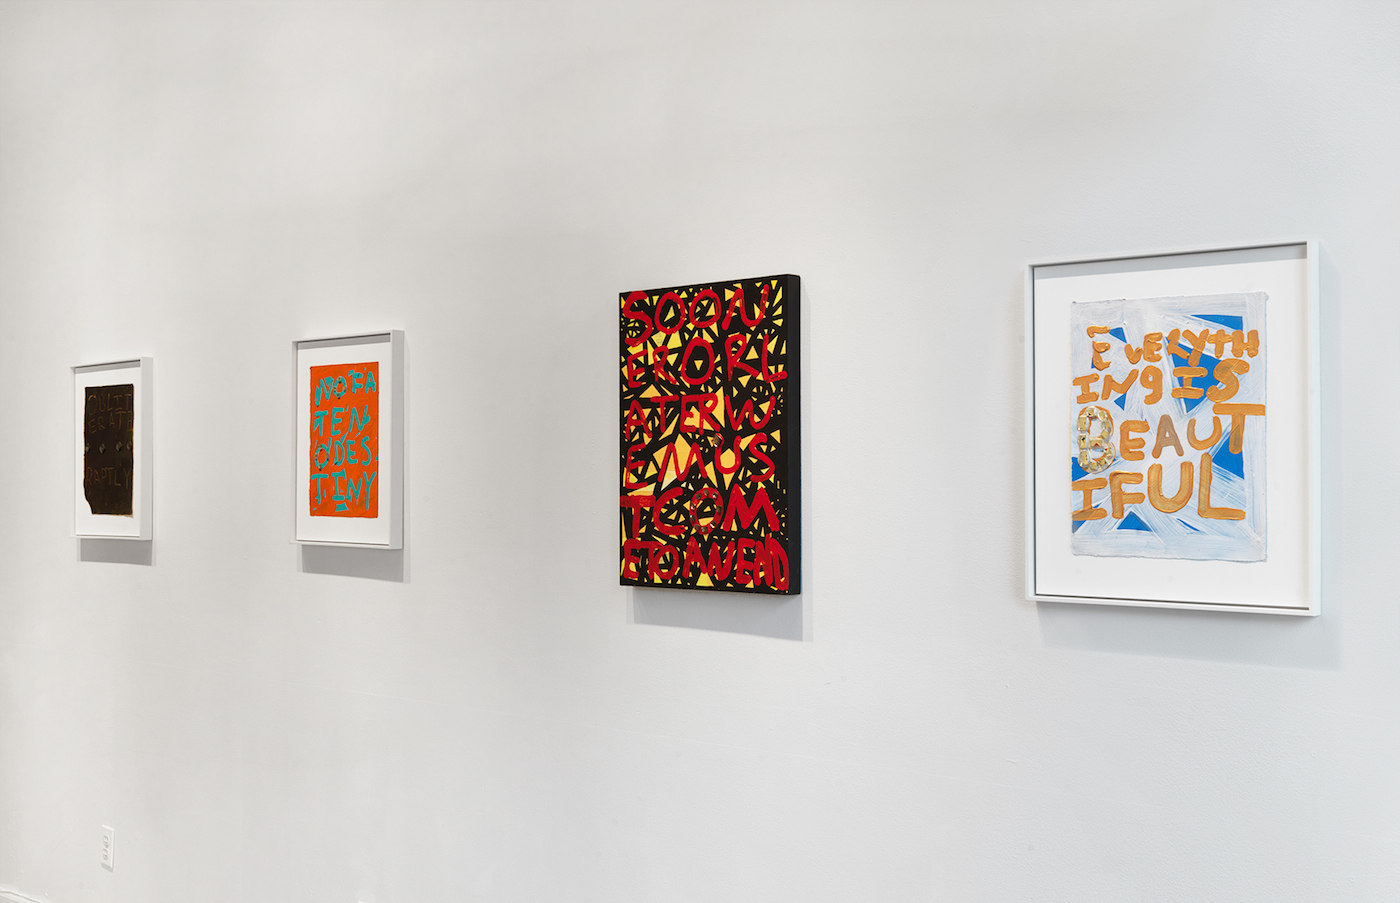 Installation view of Samuel Jablon's 'Life is Fine' at Arts + Leisure